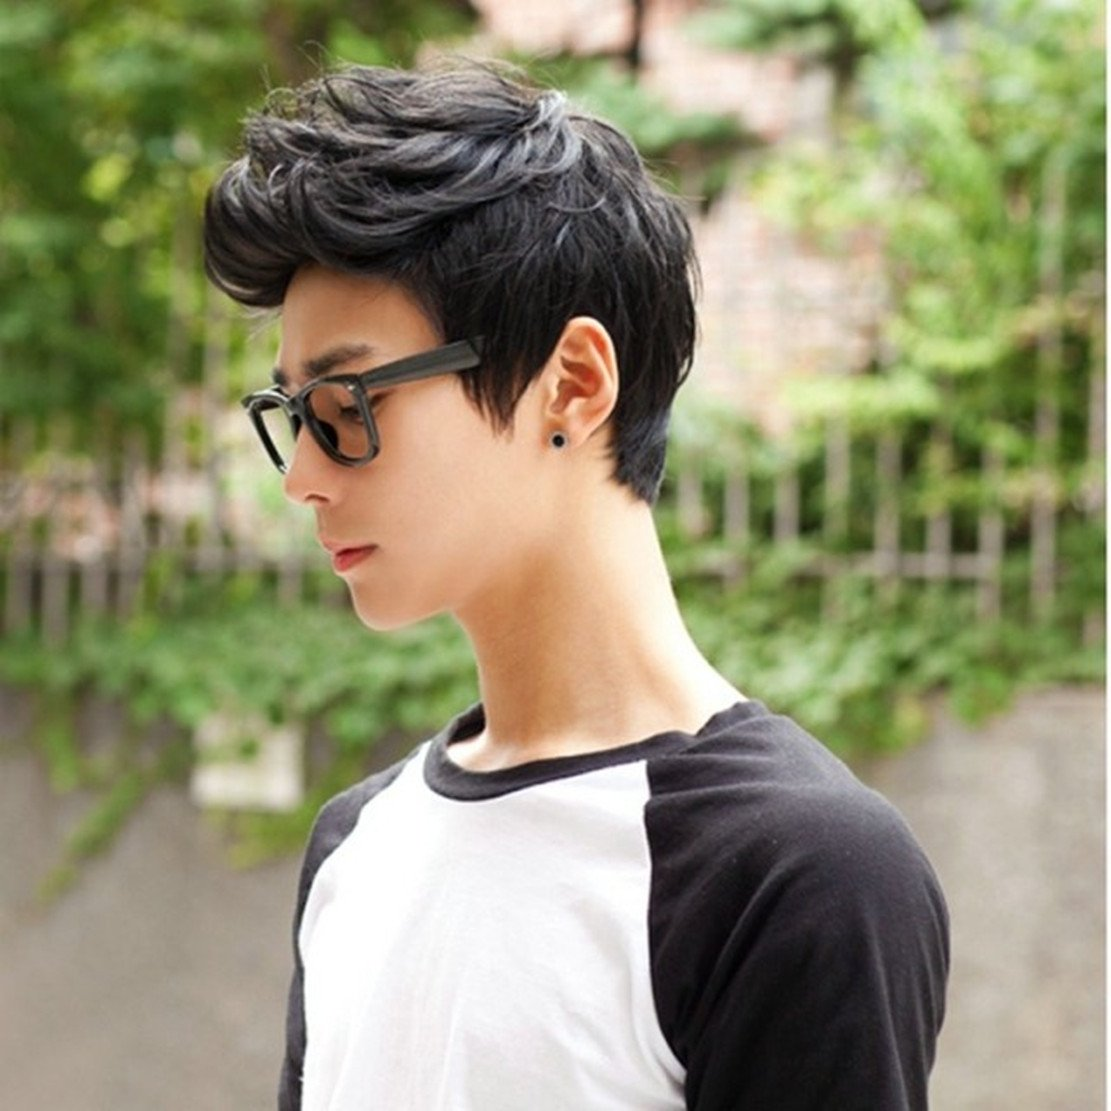 Tomorrow Lover® Handsome Sunshine Boys' Short Straight Layers Natural Hair /Daily Wigs Wig + Free Wig Cap (dark brown)